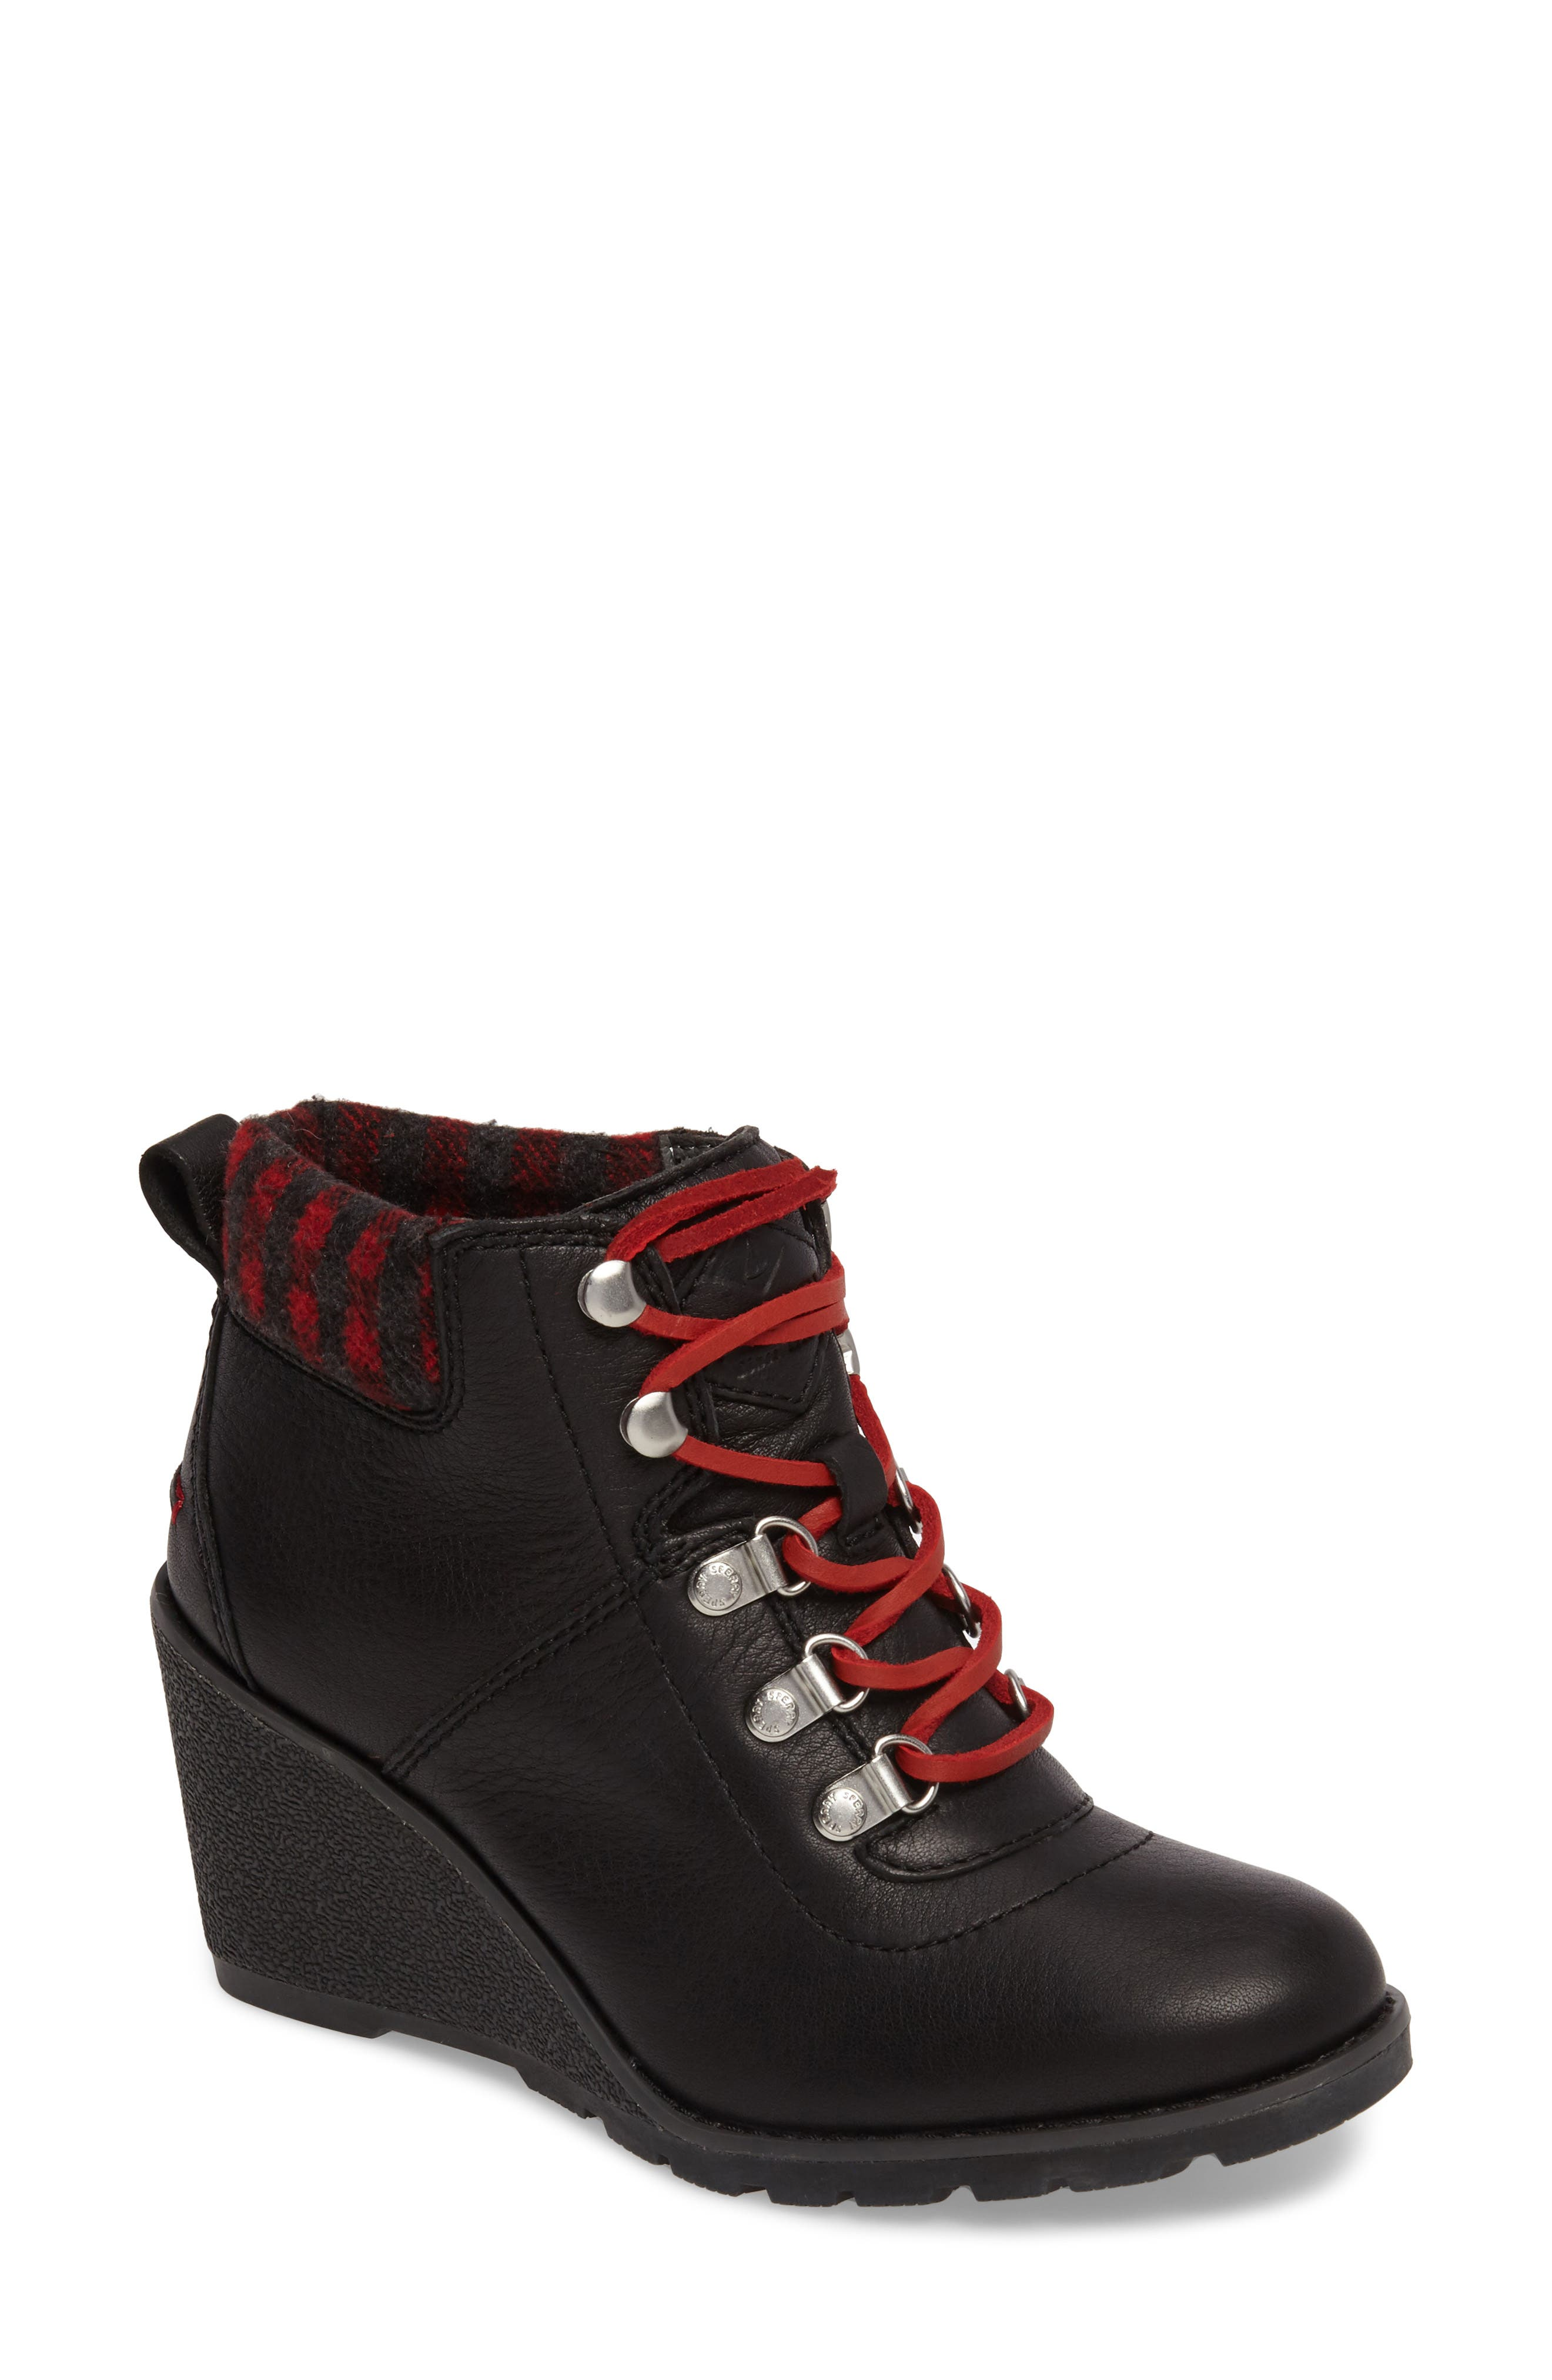 Top-Sider<sup>®</sup> Celeste Bliss Wedge Boot,                         Main,                         color, 001